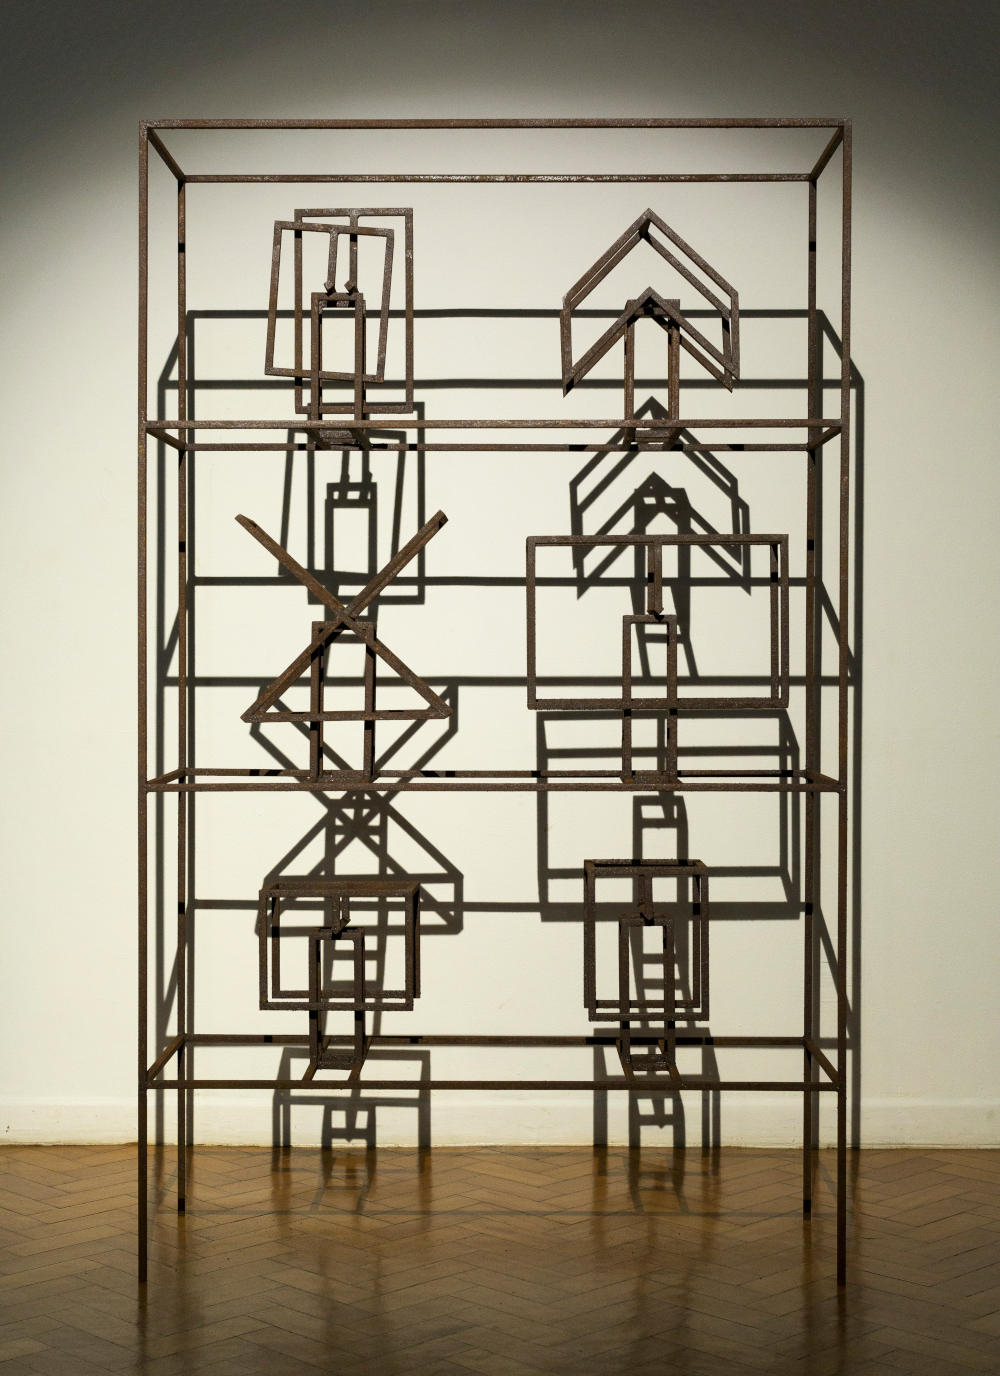 Raul Mourão, Estante das maquetes Valendo #1, 2019. 1020 steel with synthetic resin 240 x 146 x 53 cm 94.5 x 57.5 x 20.9 in. Courtesy of the artist and Galeria Nara Roesler